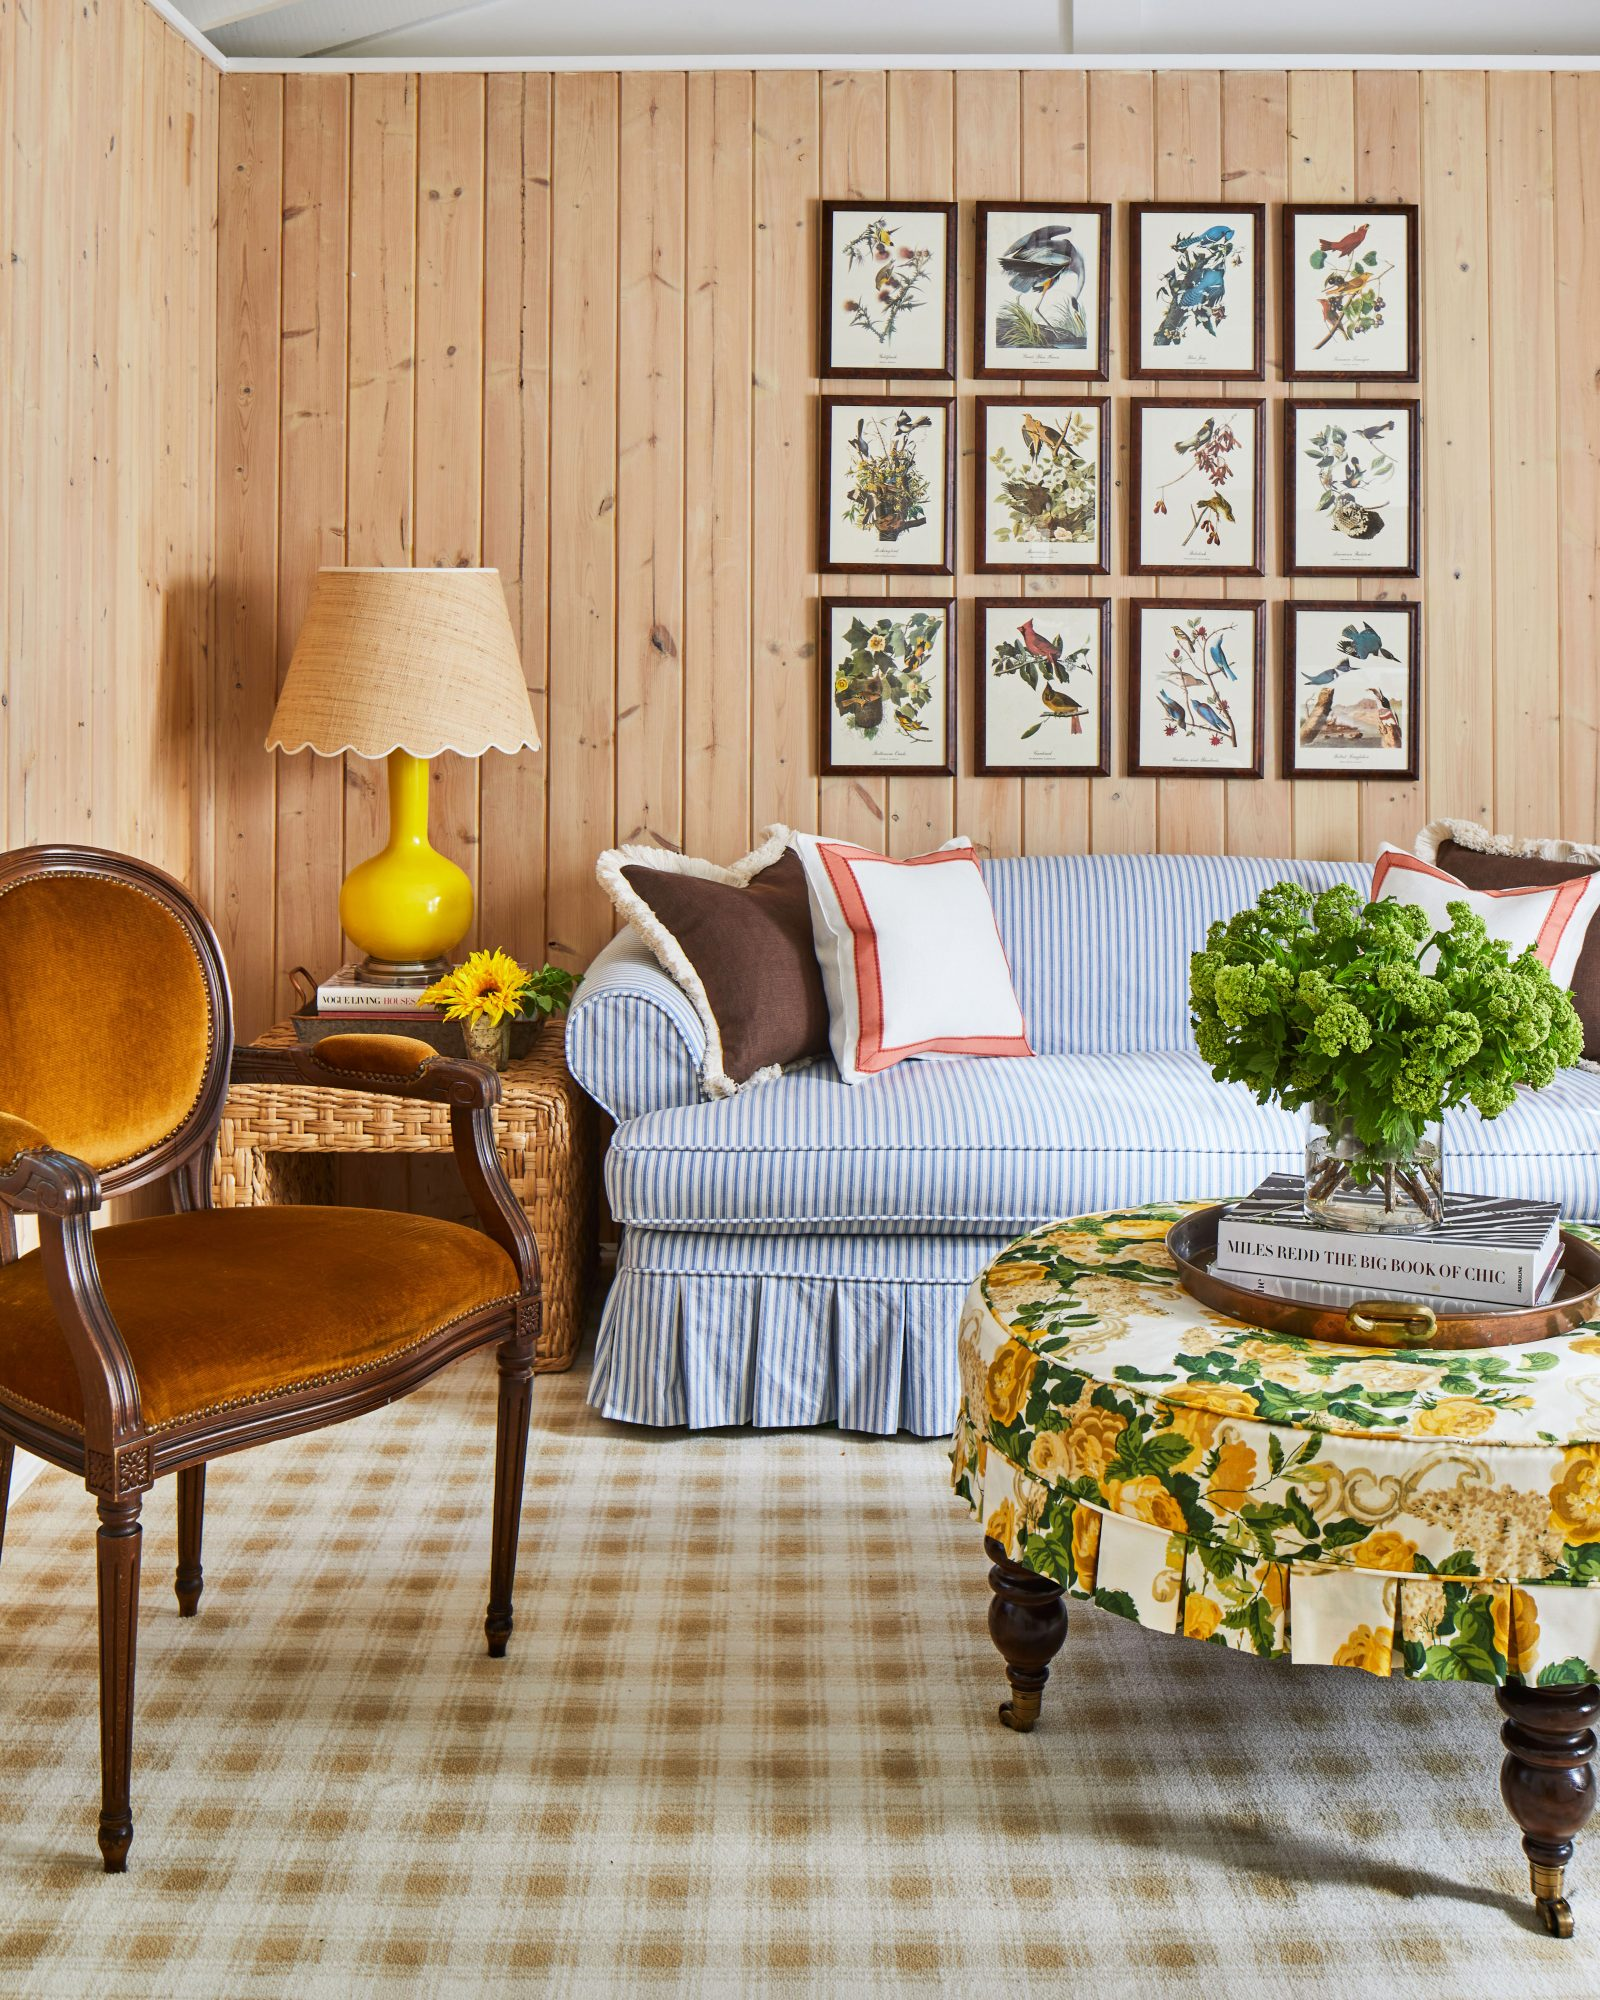 Mountain House Sitting Room with light wood paneled walls